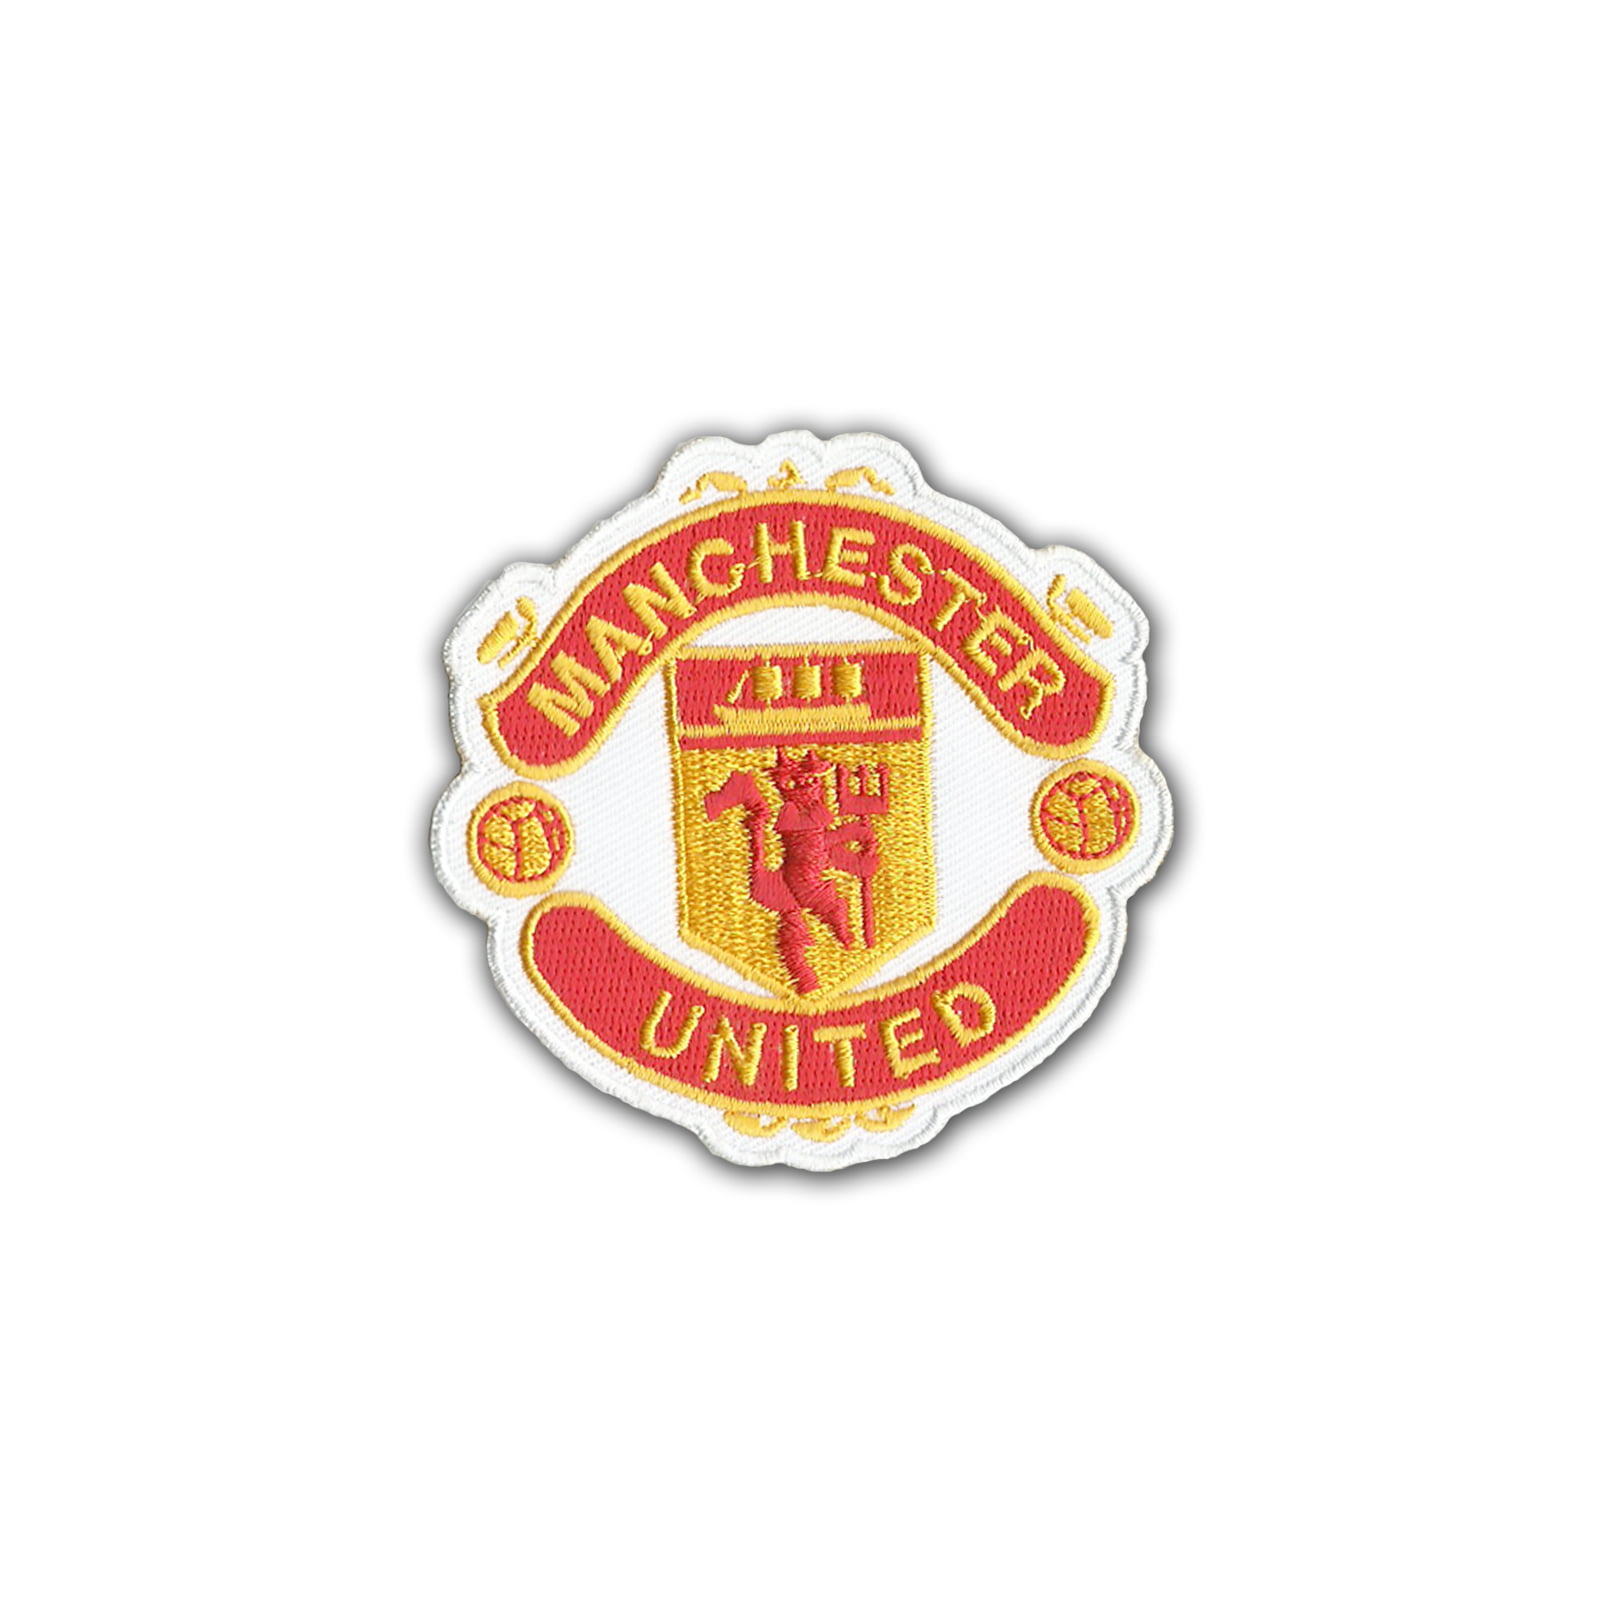 manchester united mufc man u embroidered sew on iron embroidered patch 3 logo sew ironed on badge embroidery applique patch walmart com walmart com manchester united mufc man u embroidered sew on iron embroidered patch 3 logo sew ironed on badge embroidery applique patch walmart com